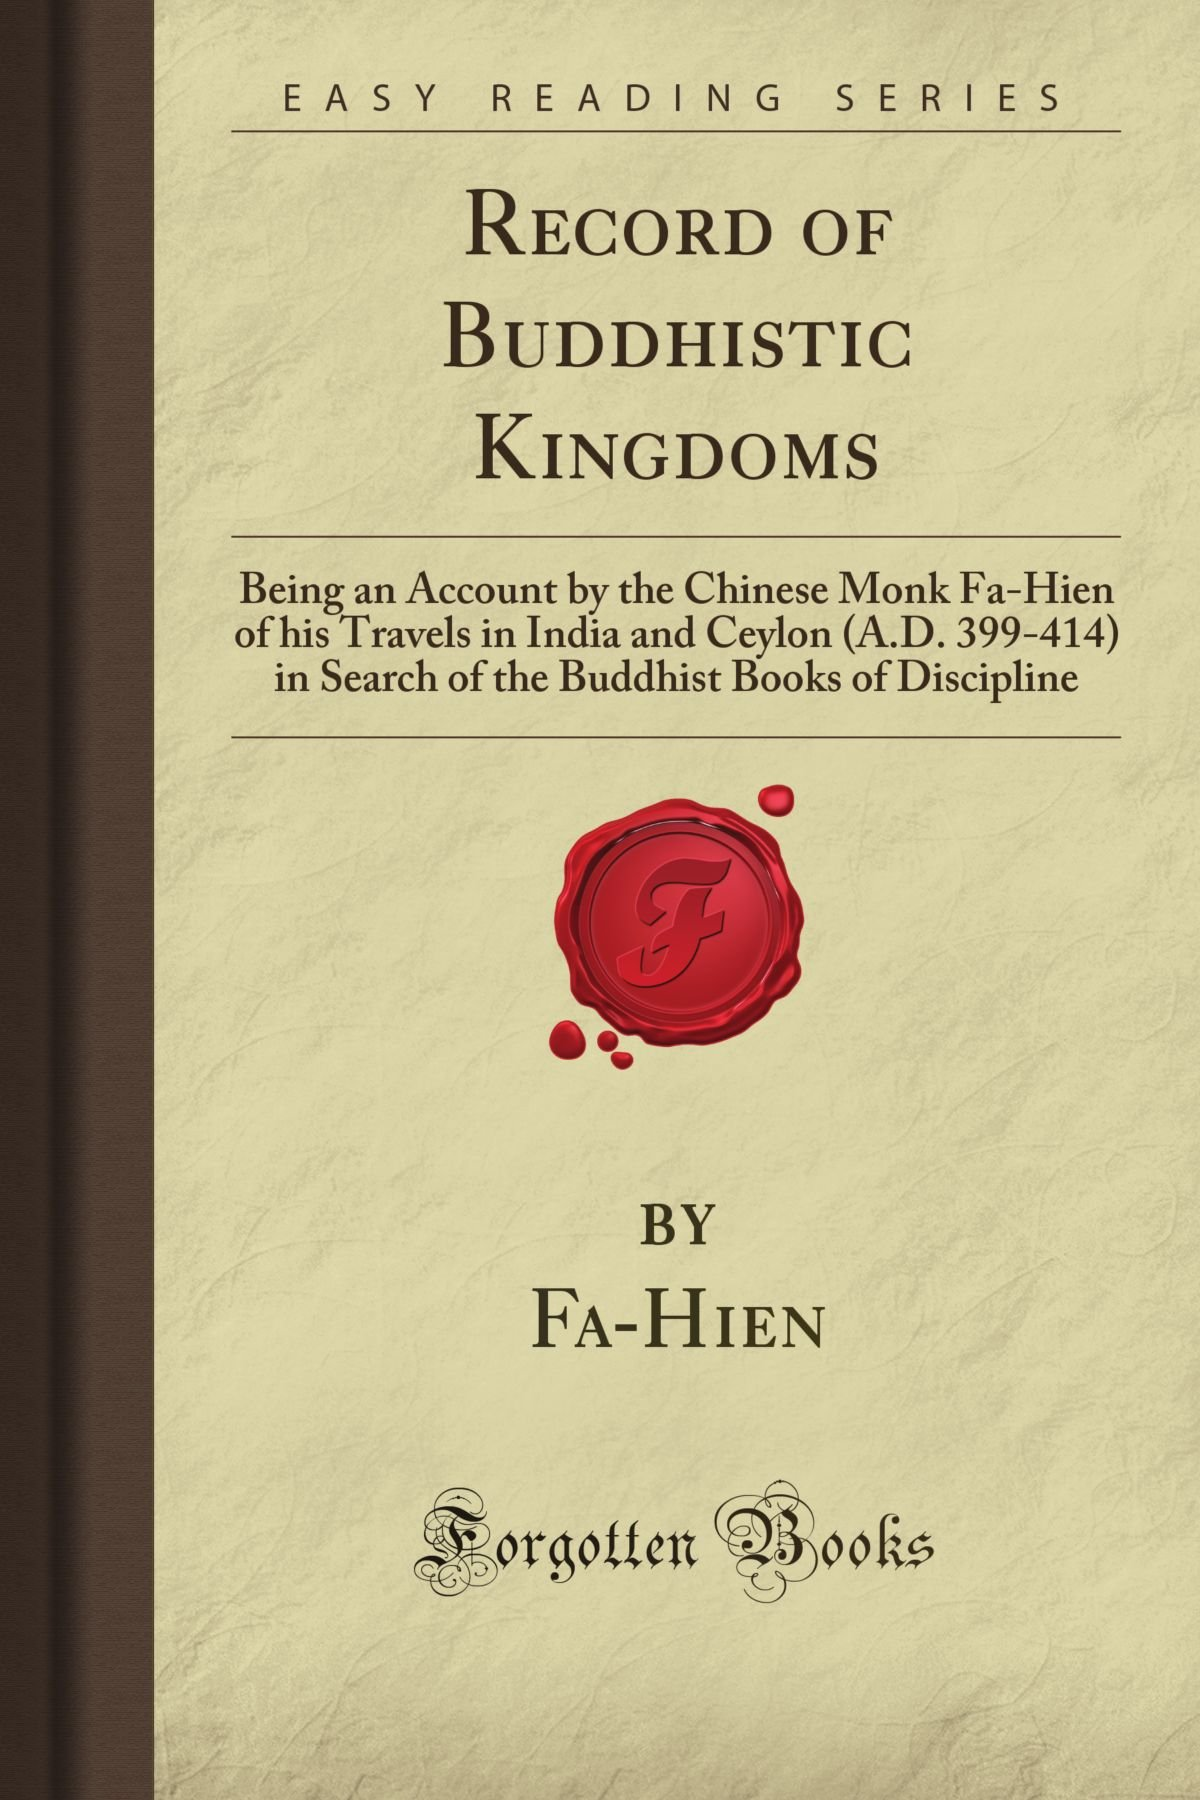 Record of Buddhistic Kingdoms: Being an Account by the Chinese Monk Fa-Hien of his Travels in India and Ceylon (A.D. 399-414) in Search of the Buddhist Books of Discipline (Forgotten Books) pdf